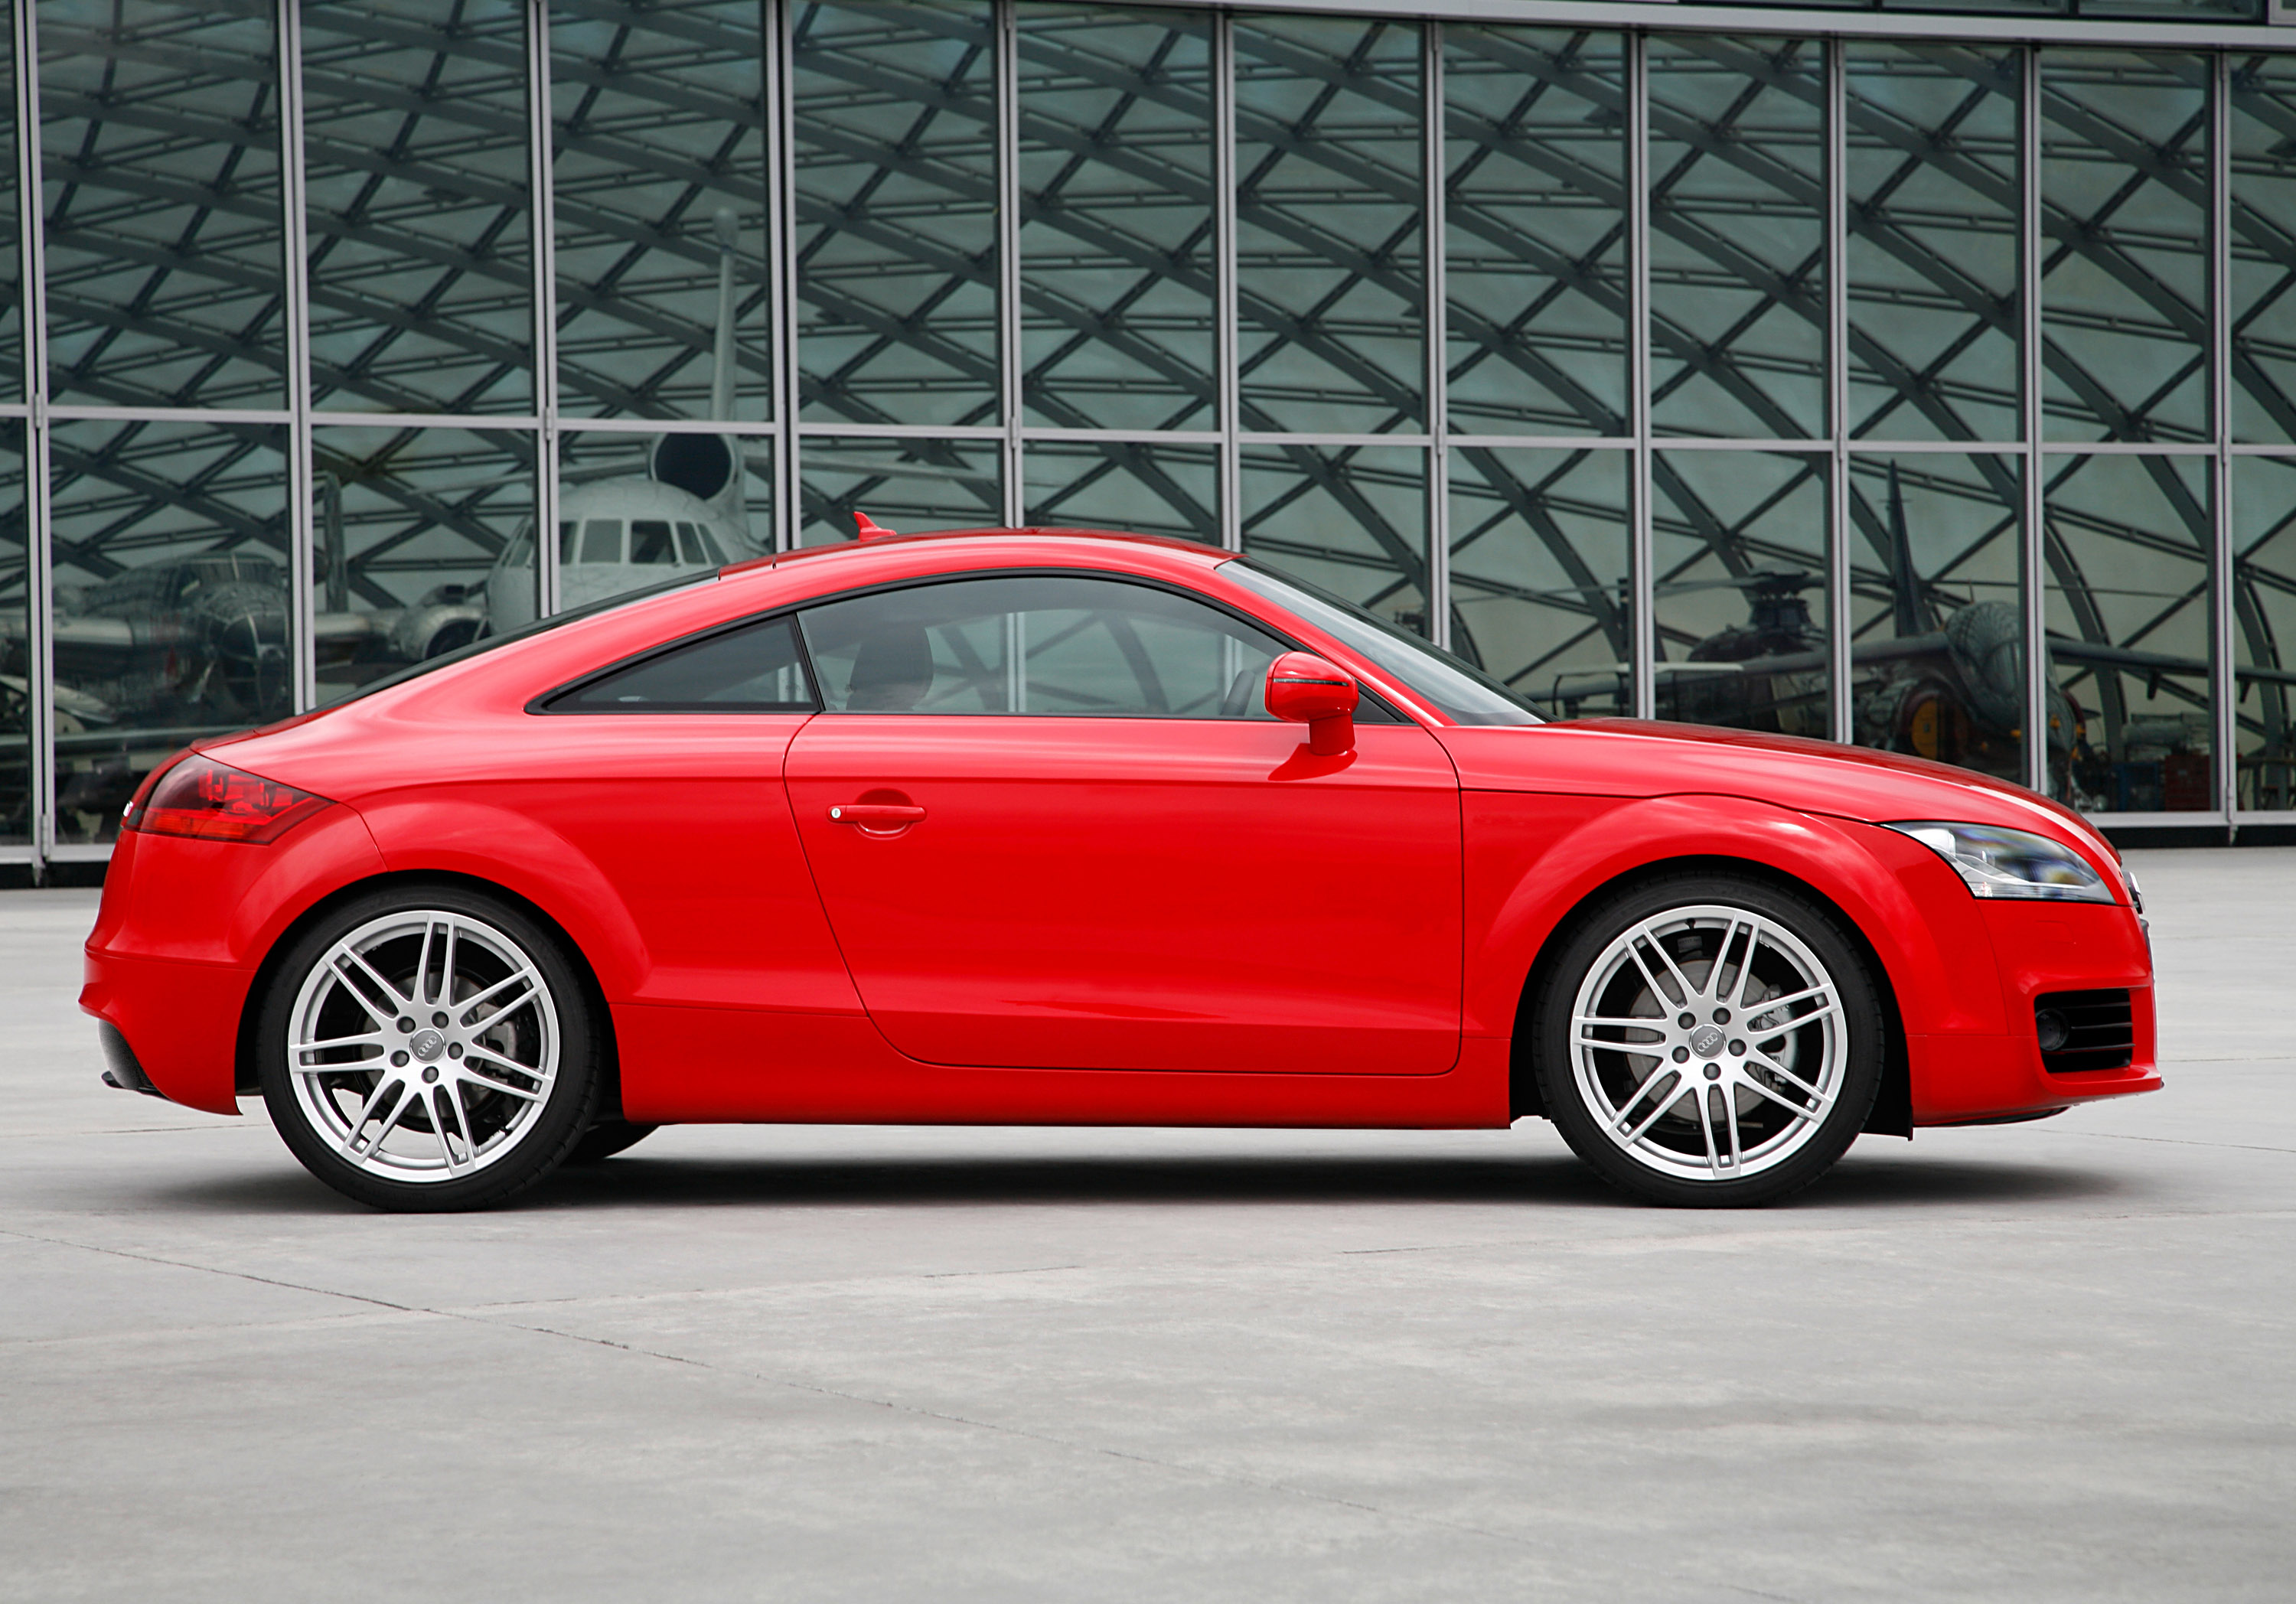 2006 audi tt coupe 2 0 t fsi picture 39365. Black Bedroom Furniture Sets. Home Design Ideas